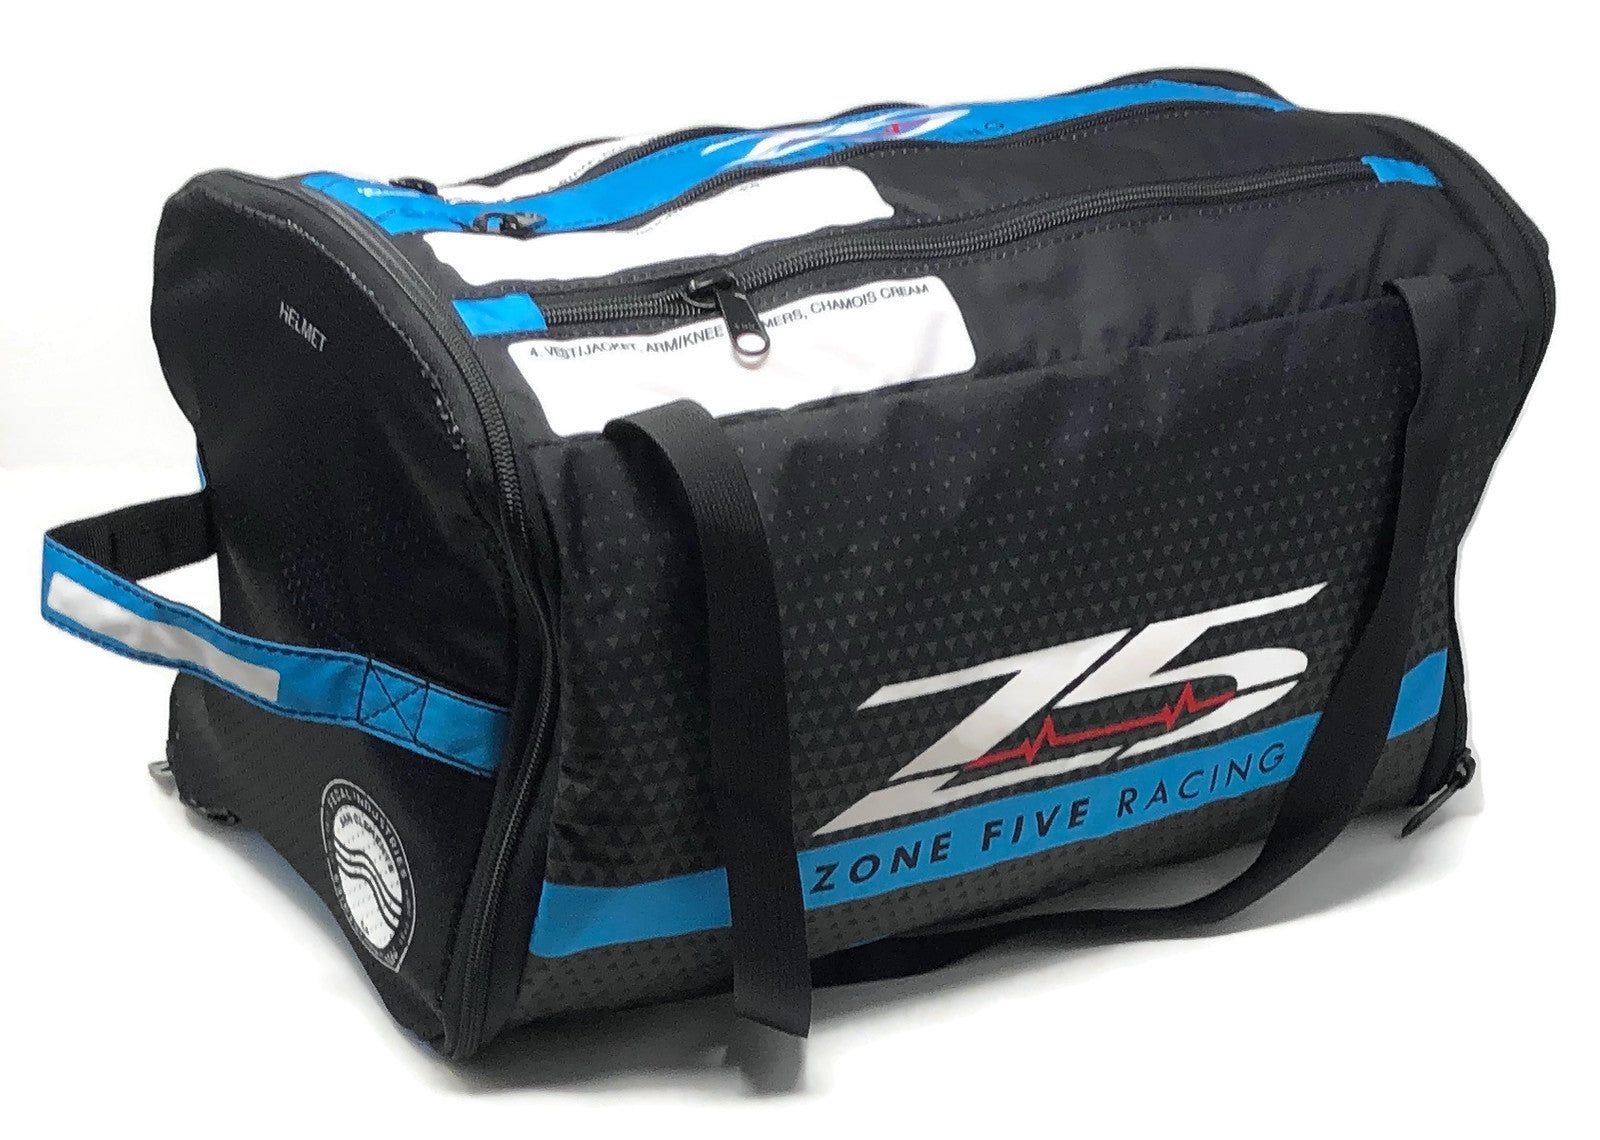 Zone 5 RACEDAY BAG - ships in about 3 weeks